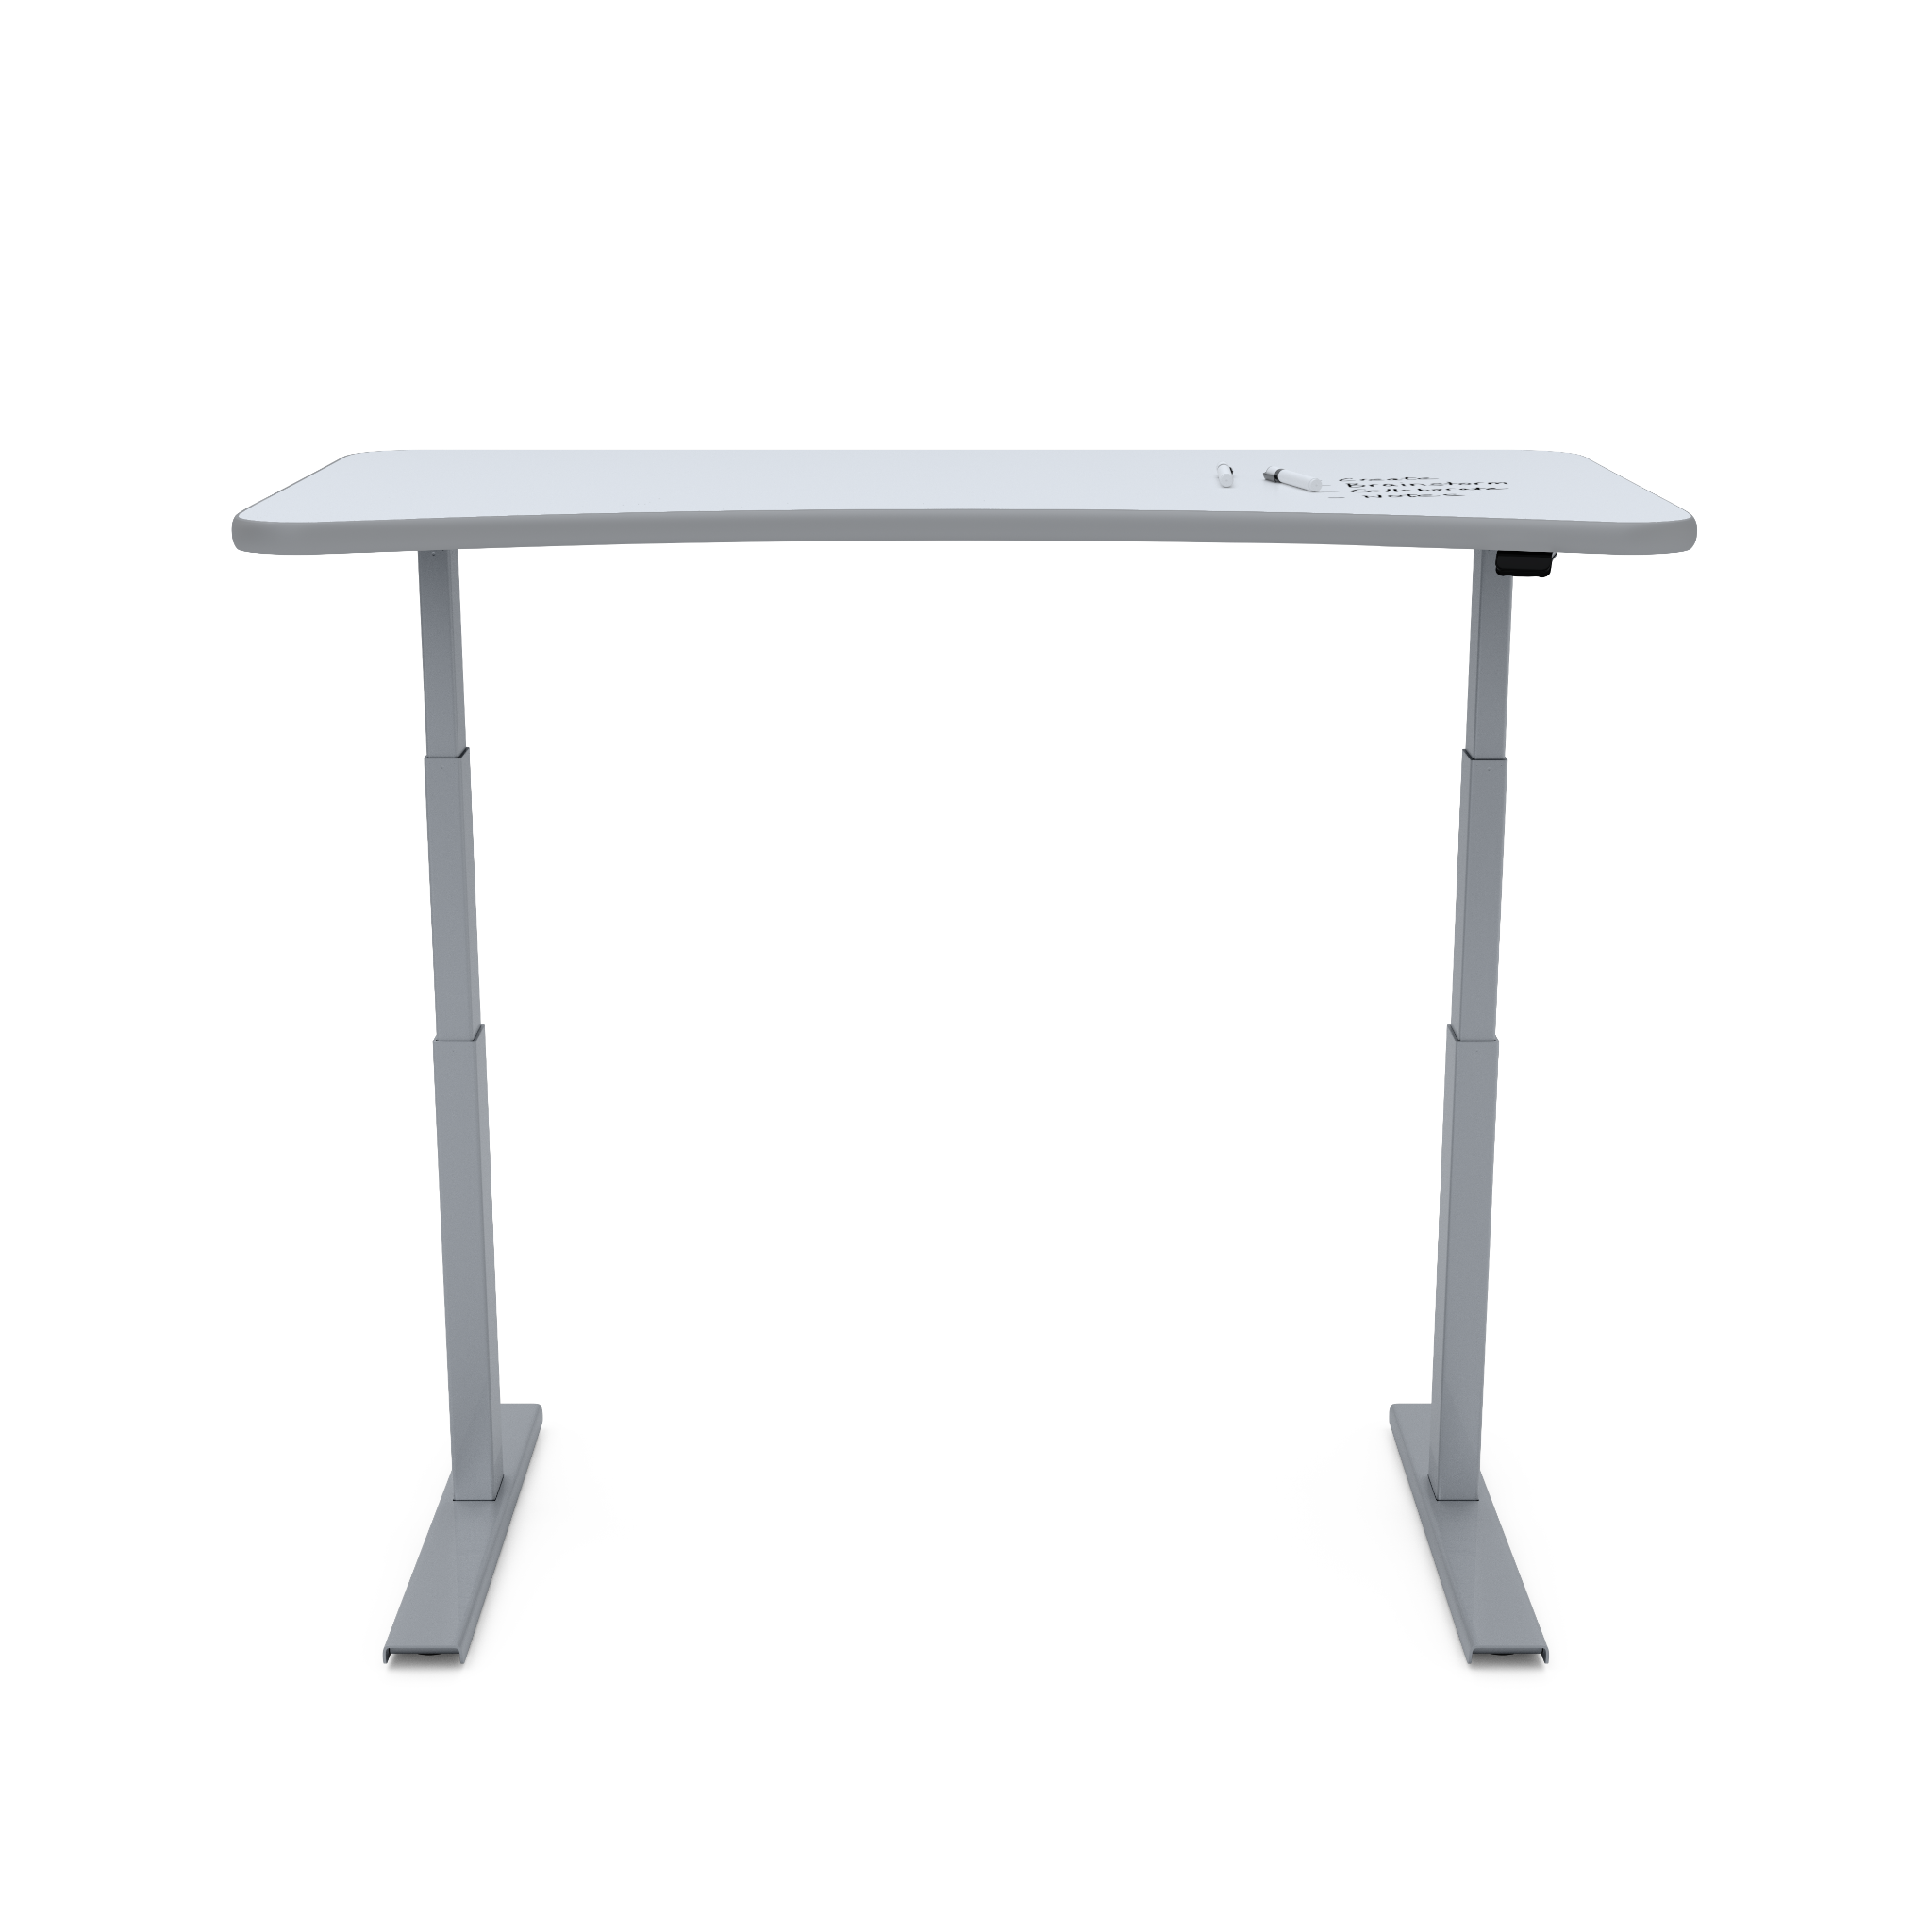 UPDESK Electric Lift Standing Desk - UpWrite Daylight Top w/ Gray Trim on Titanium Frame **CLOSEOUT**